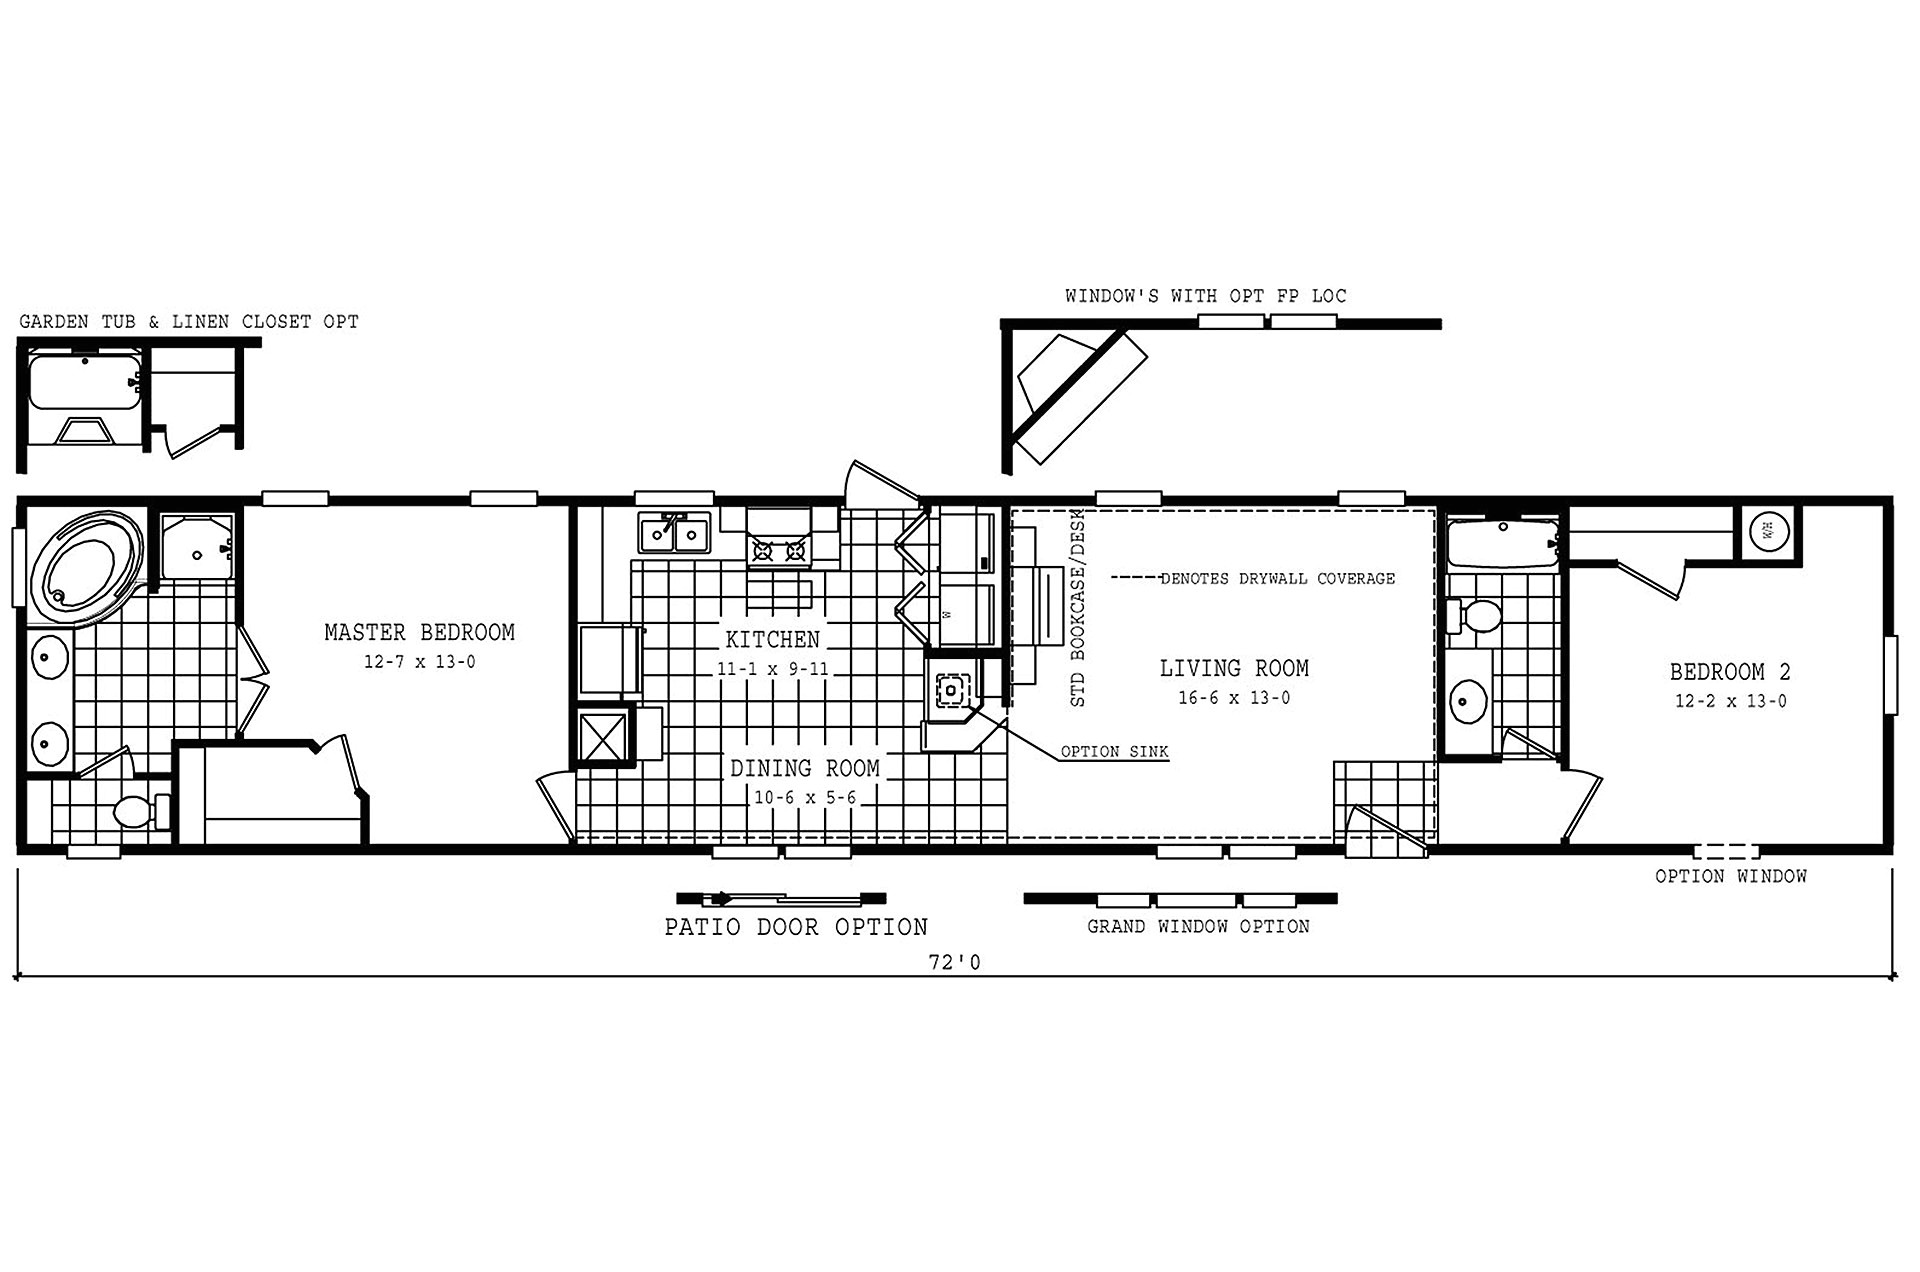 oakwood mobile home floor plans manufacturedhomefloorplans 231038